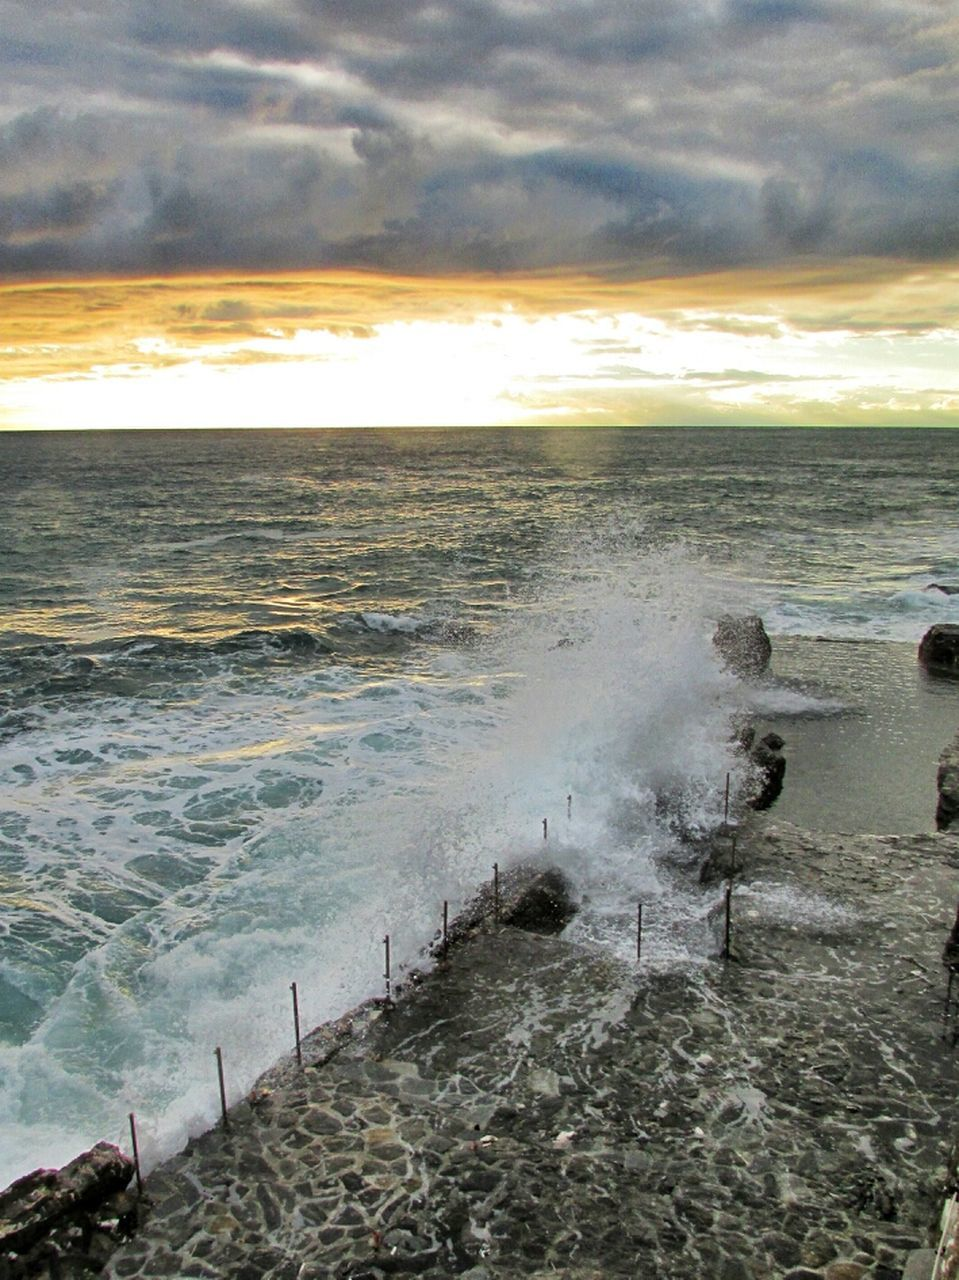 sea, cloud - sky, sky, nature, water, beauty in nature, wave, beach, scenics, no people, sunset, tranquility, outdoors, tranquil scene, horizon over water, motion, day, storm cloud, power in nature, force